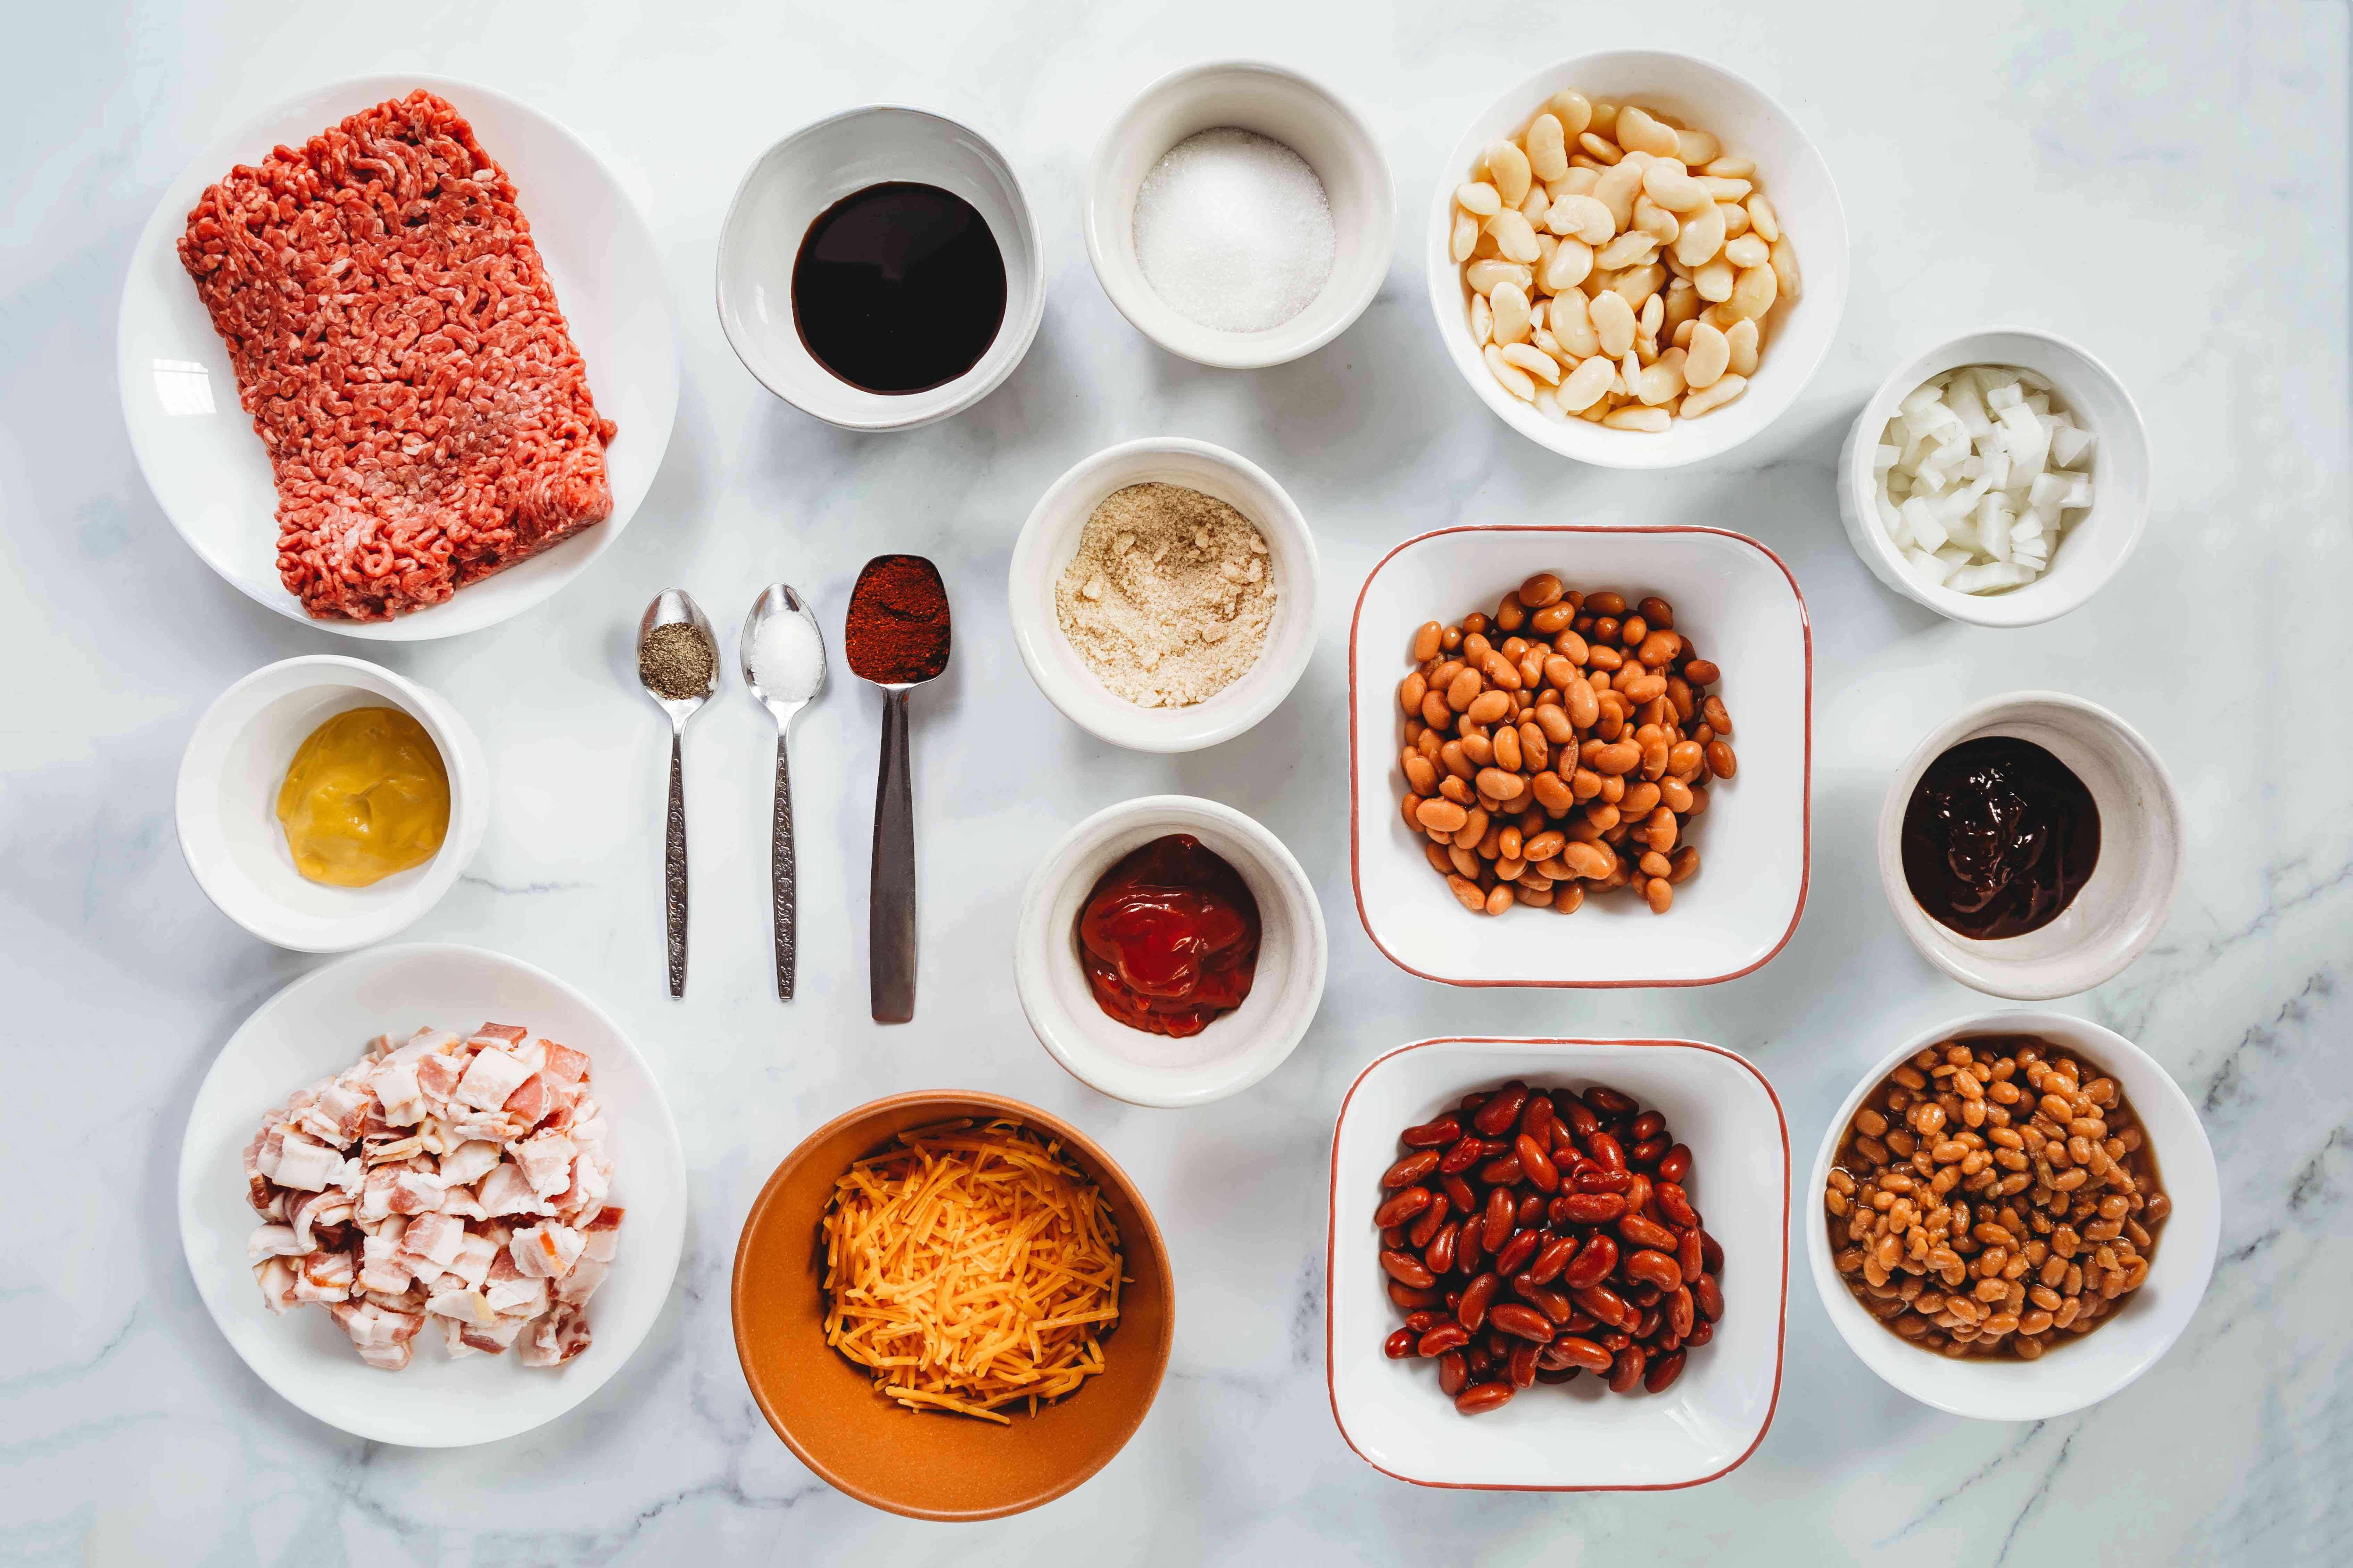 Cowboy Beans With Ground Beef ingredients